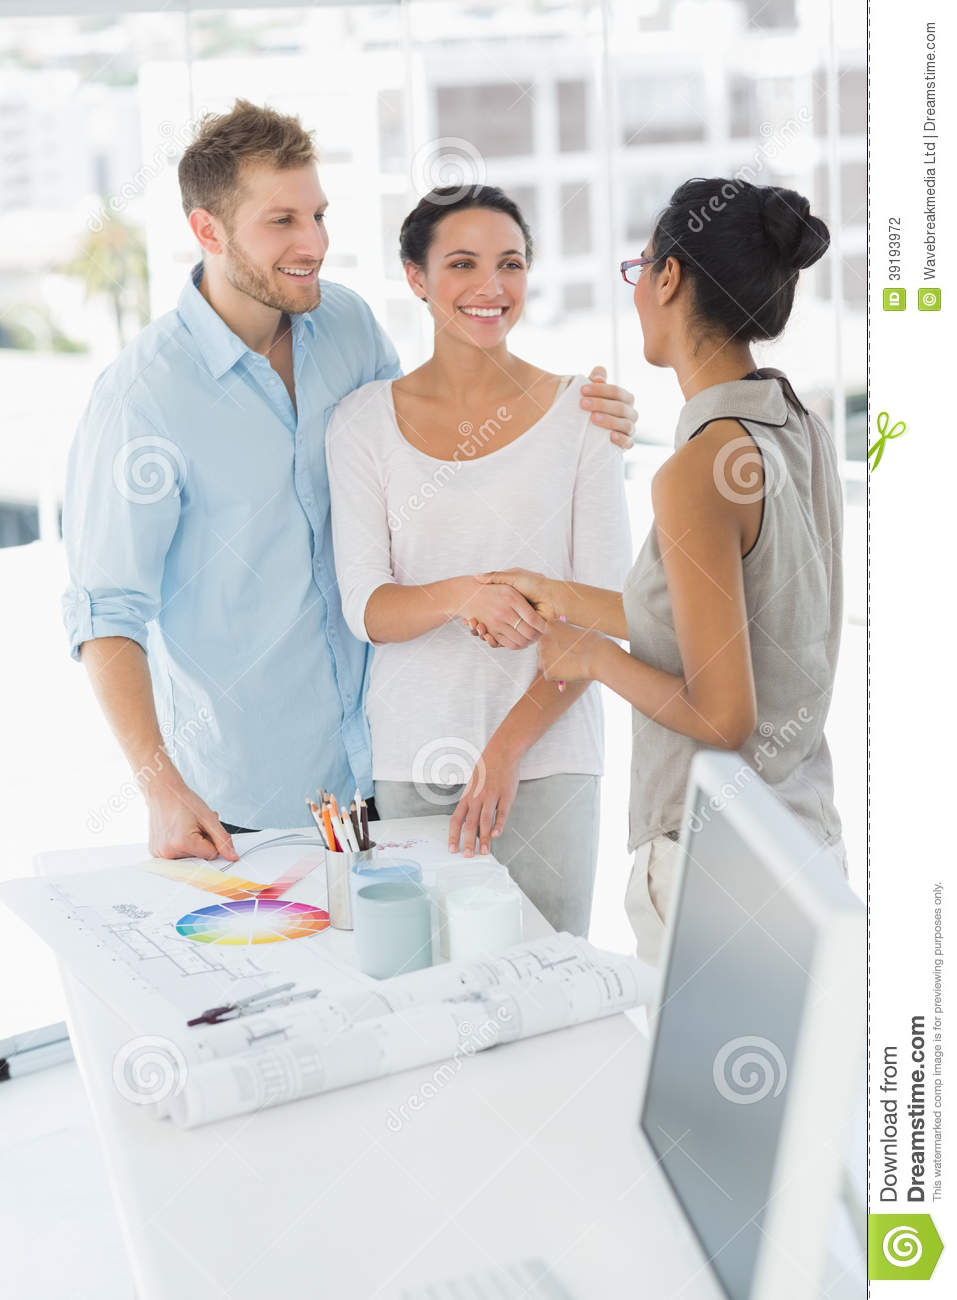 Interior designer shaking hands with smiling client stock for How to find interior design clients